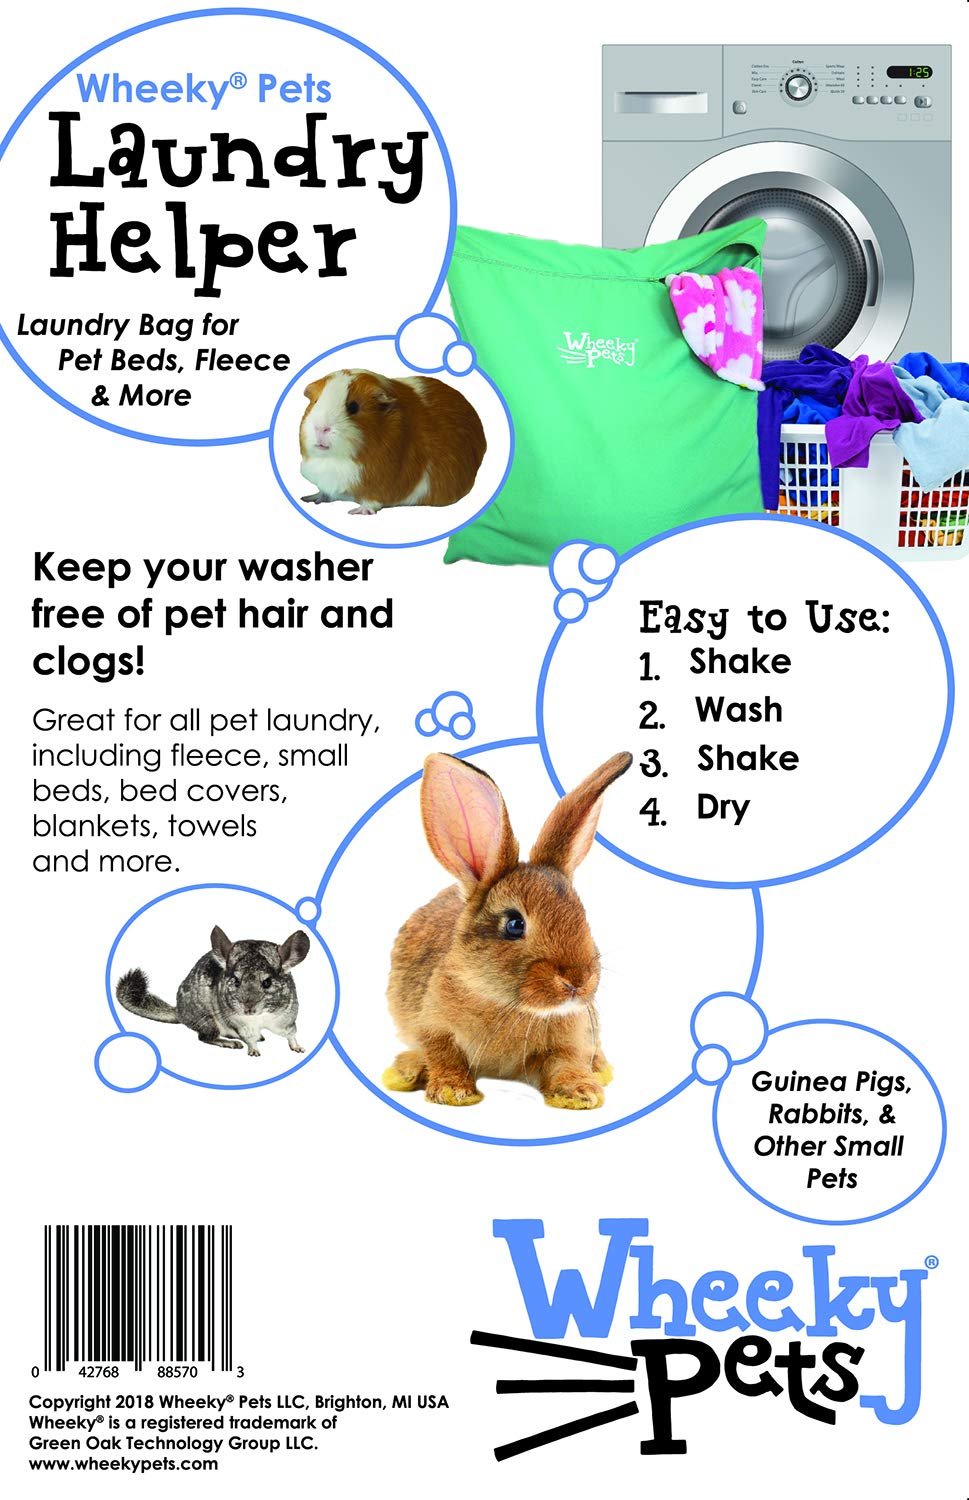 """Wheeky Pets Laundry Helper, Laundry Bag for Pet Beds, Fleece, C&C Cage Liners, Midwest Cage Liners and More, for Guinea Pigs, Rabbits and Small Pets, Green/White, Size 29"""" W x 31"""" L 2"""